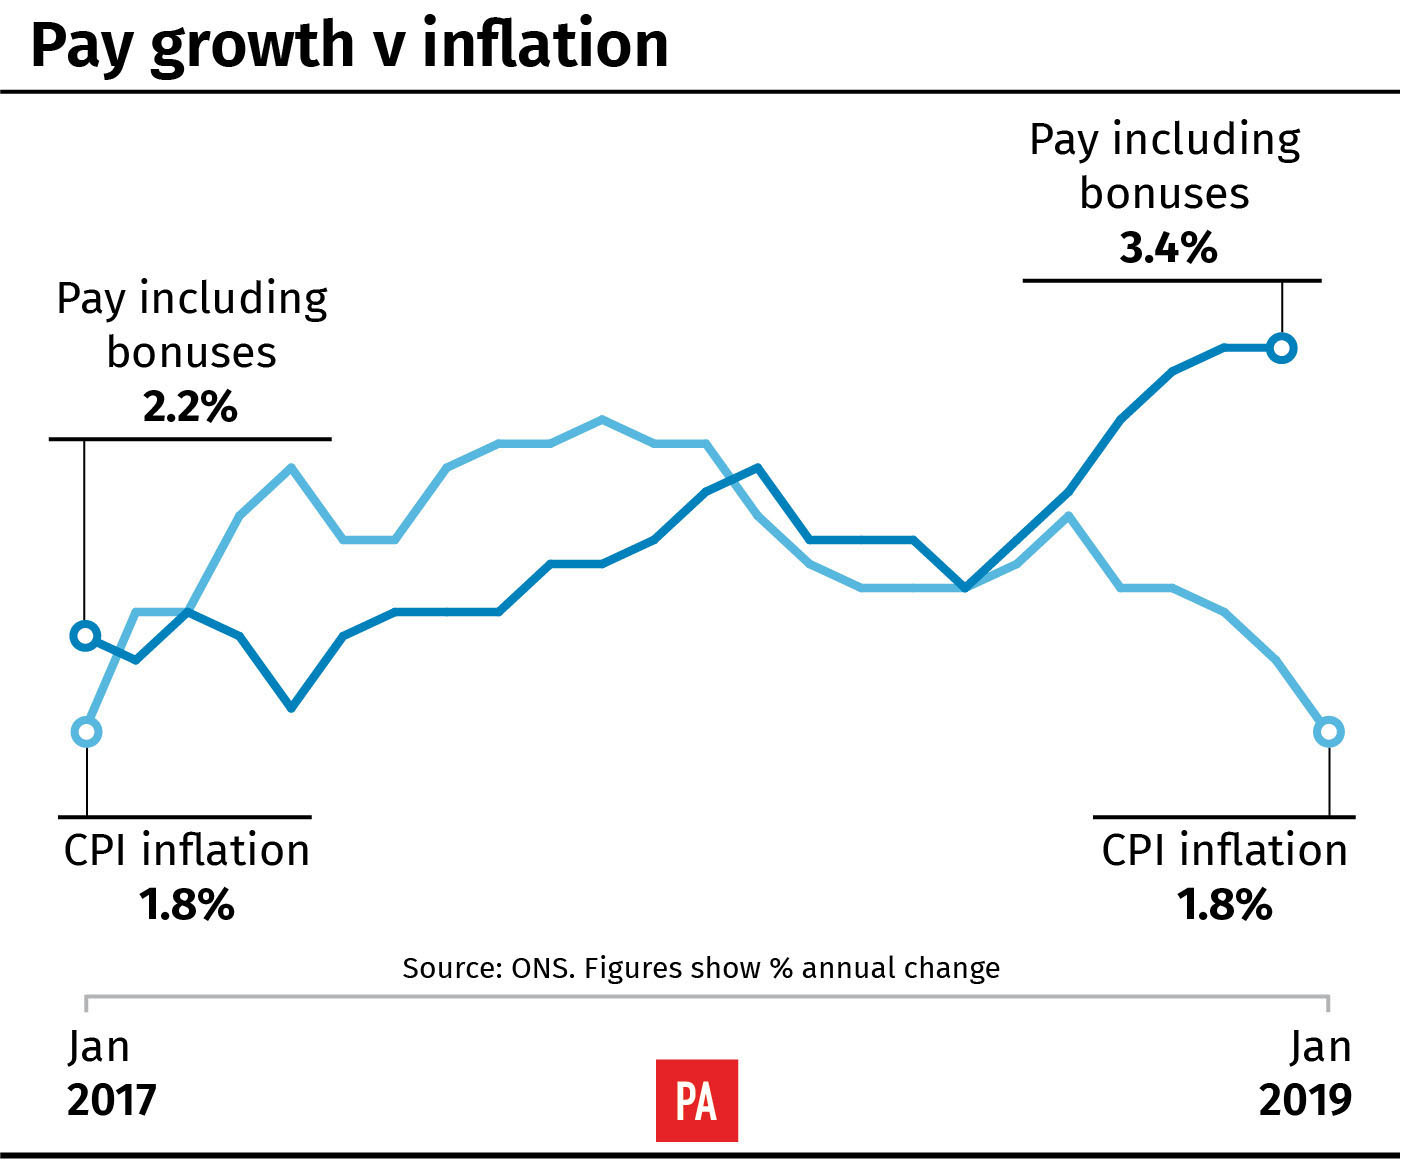 United Kingdom wages rose by 3.4% in December, meets expectations